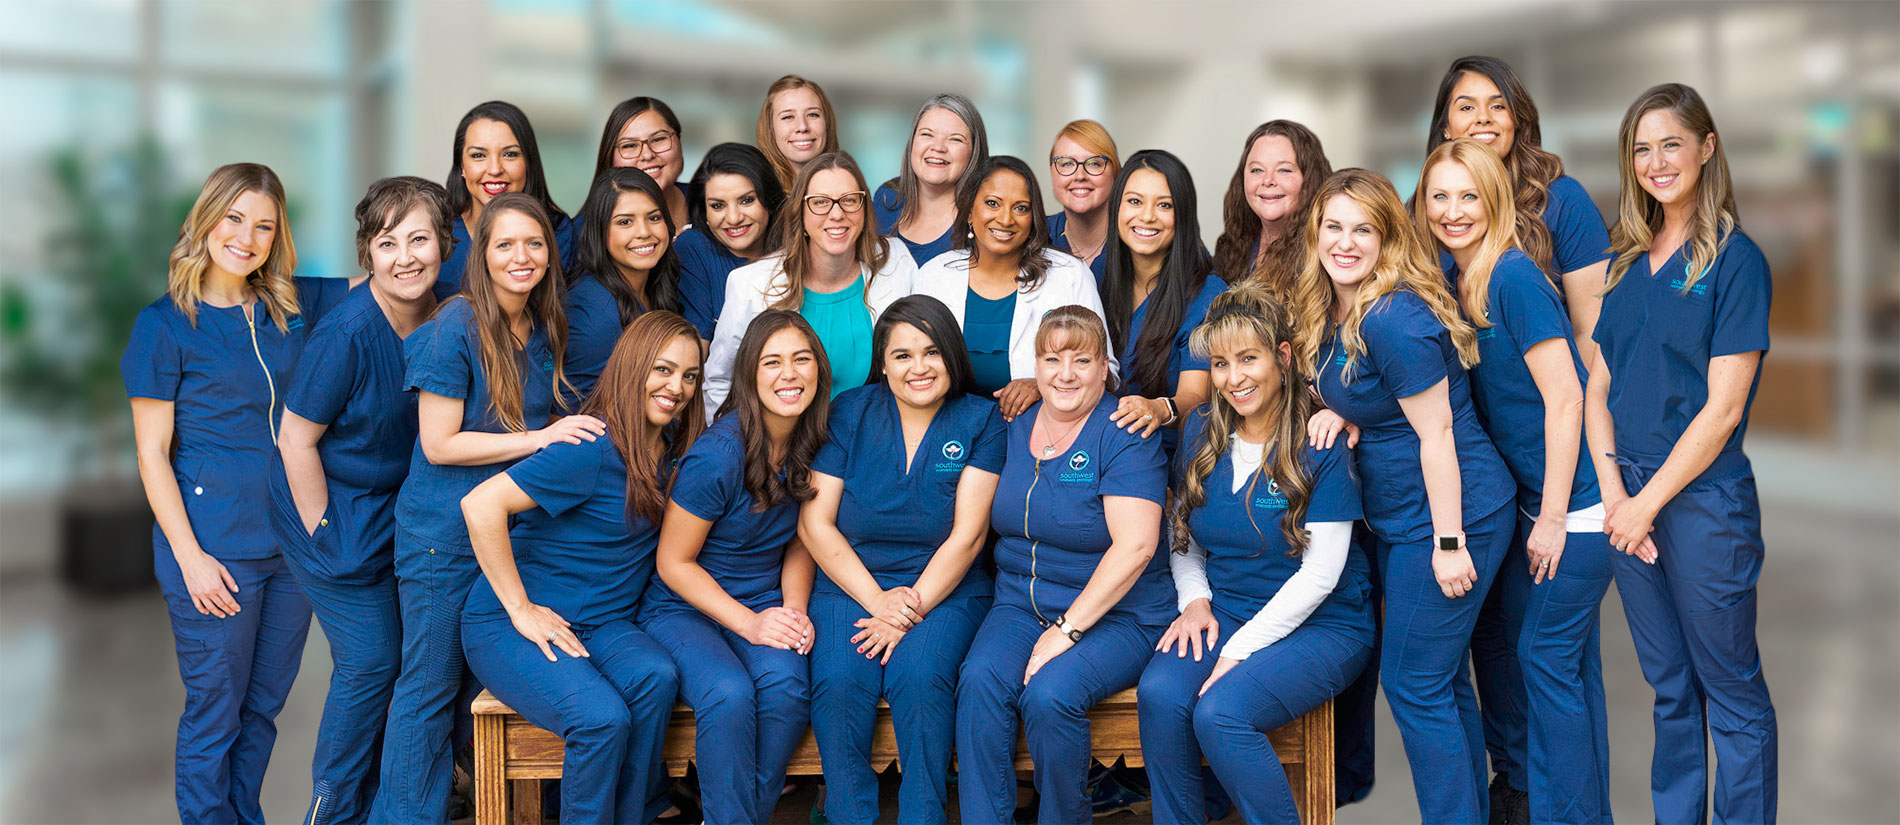 medical oncology team of women treating cancer